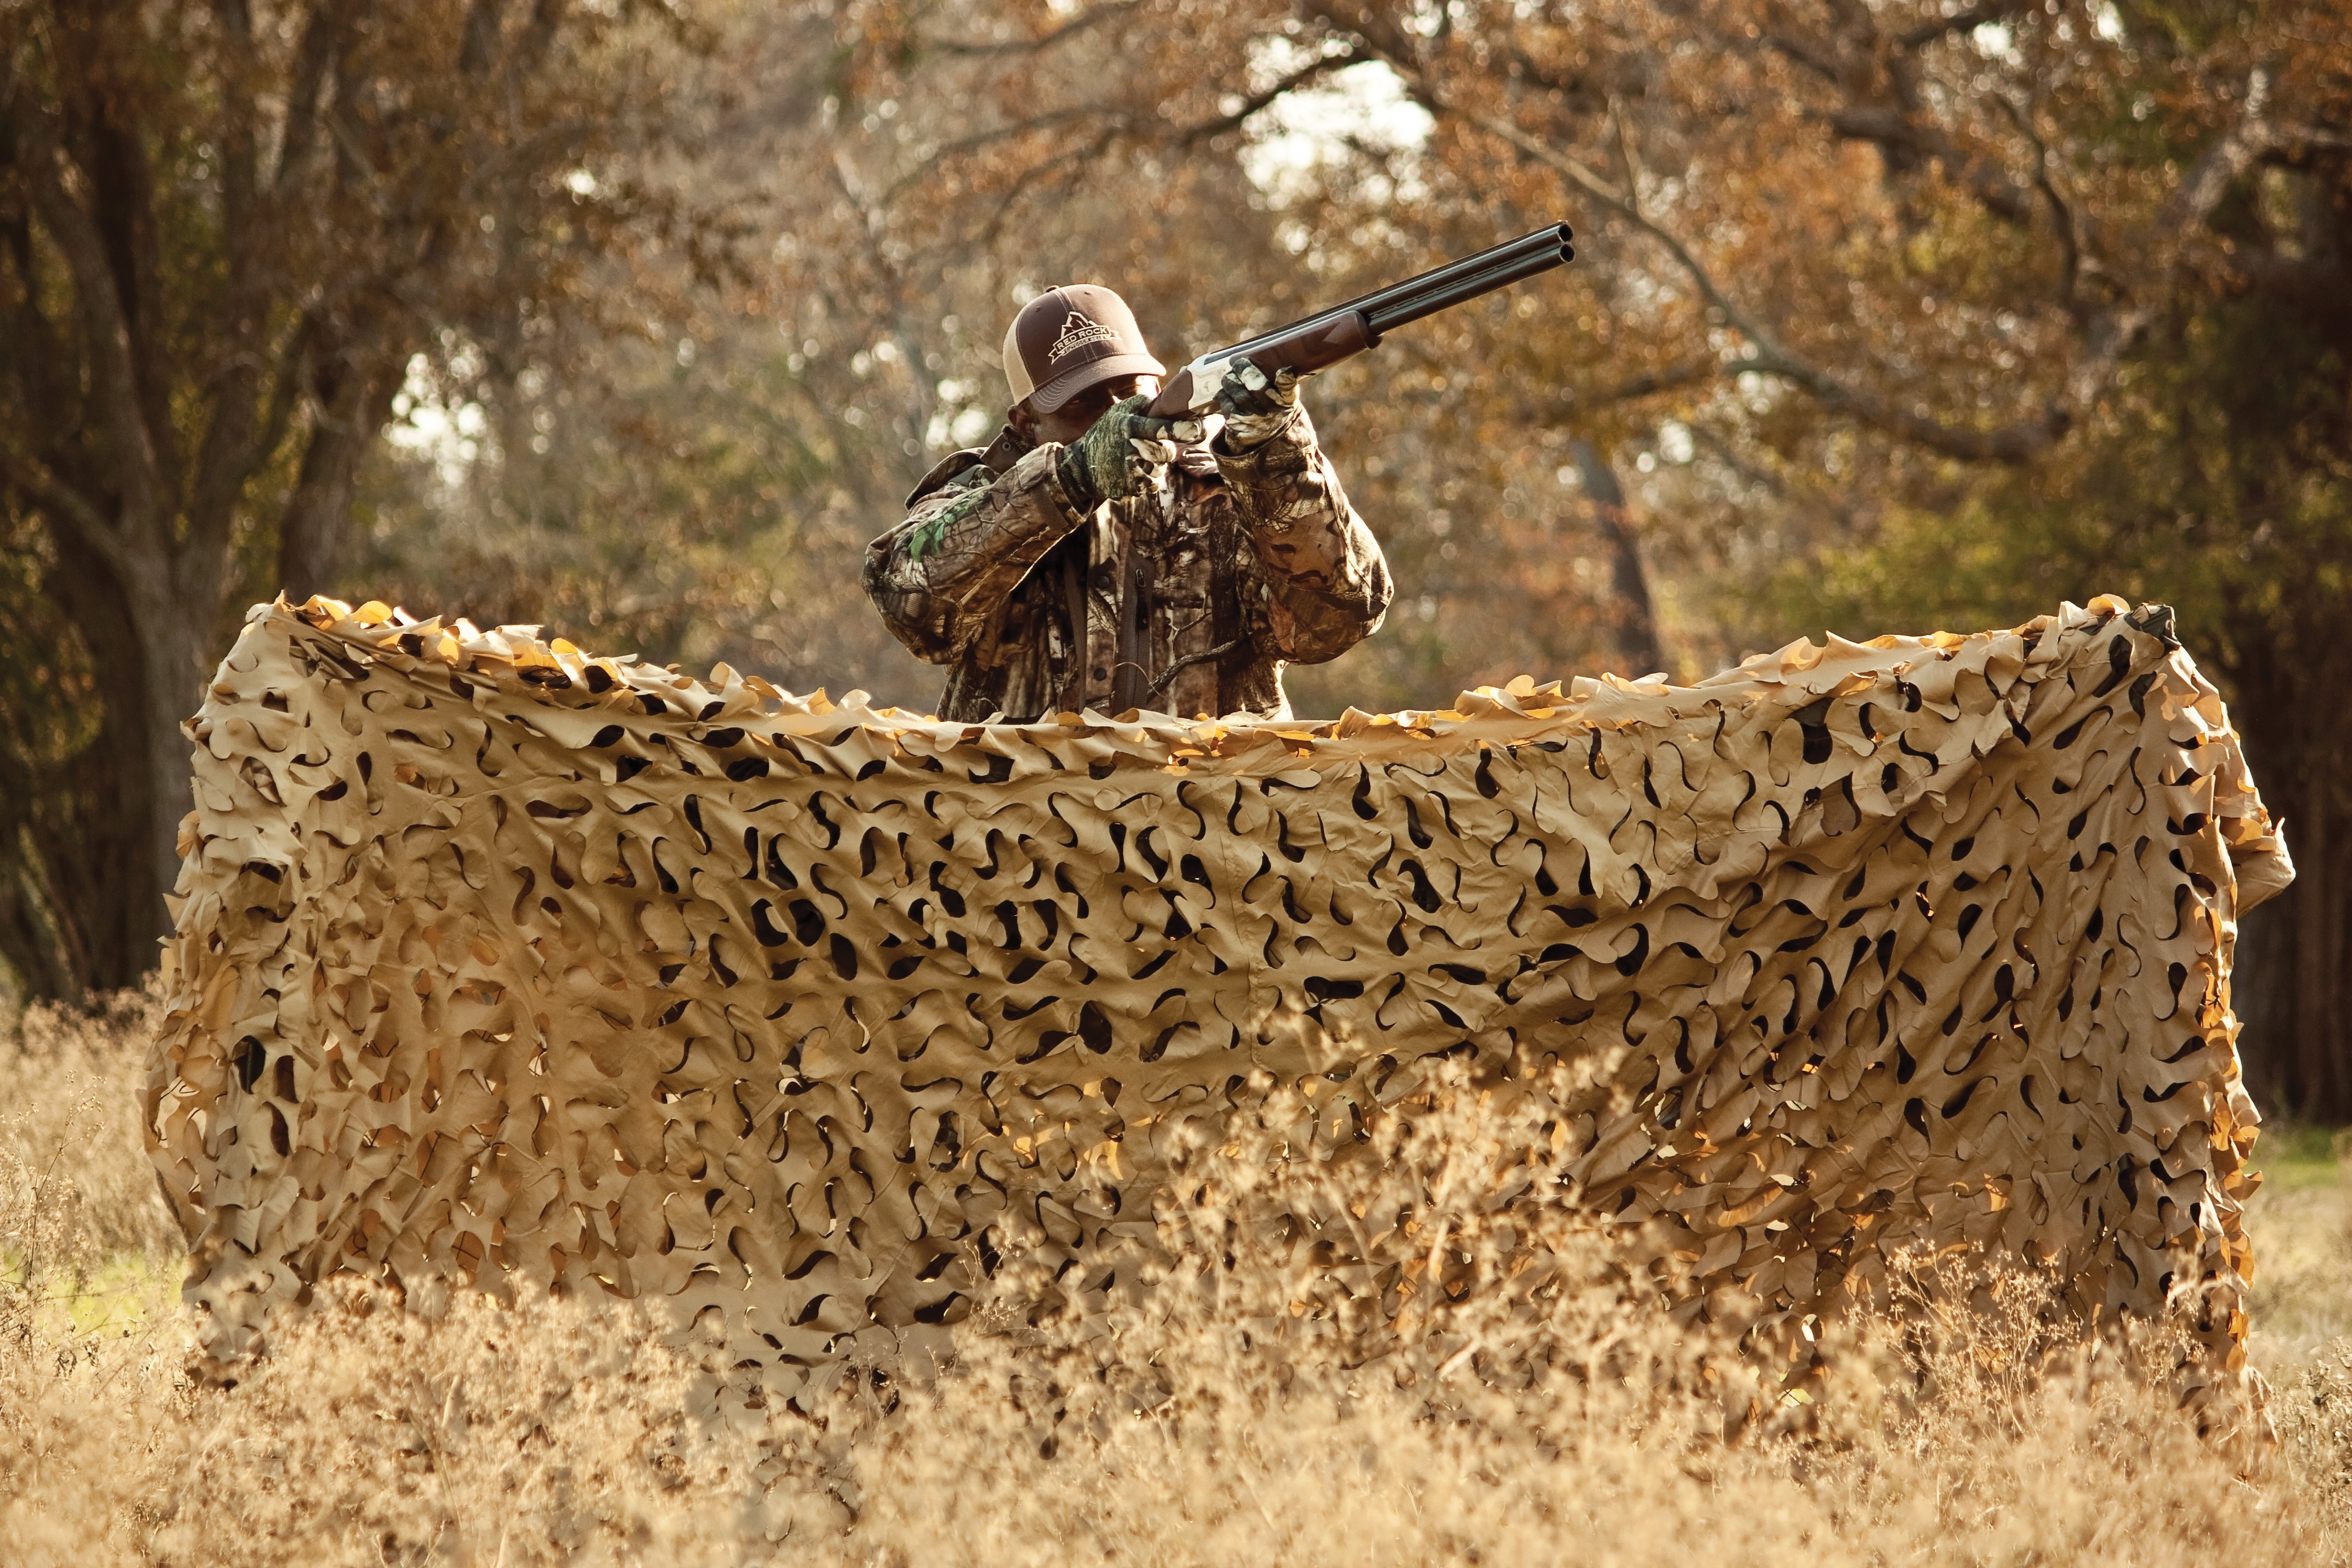 Red Rock Gear Hunting Series Camouflage Netting